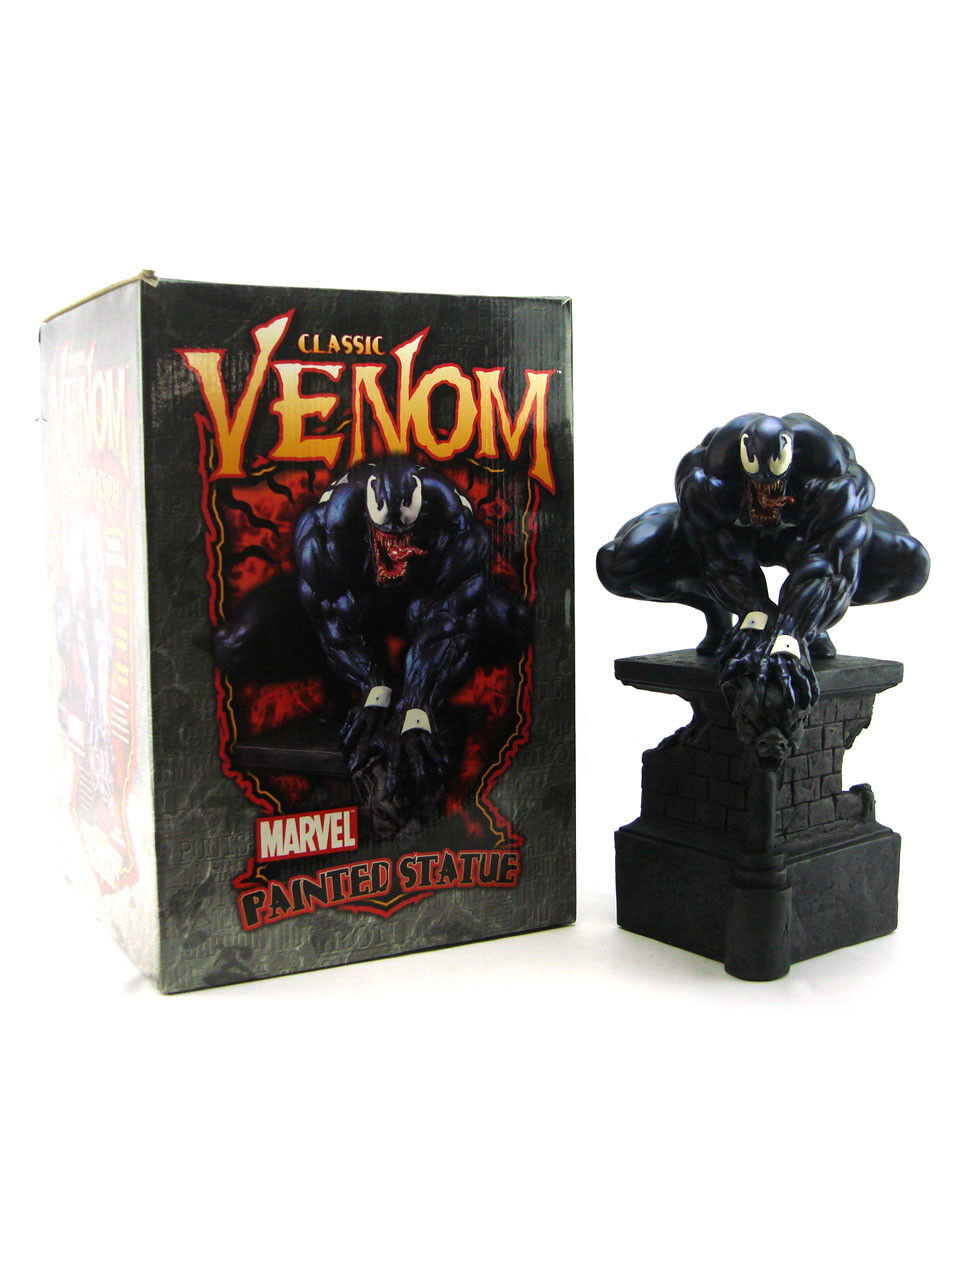 Bowen Designs Venom Statue Classic Version 581/1000 Marvel Sample Spider-Man New